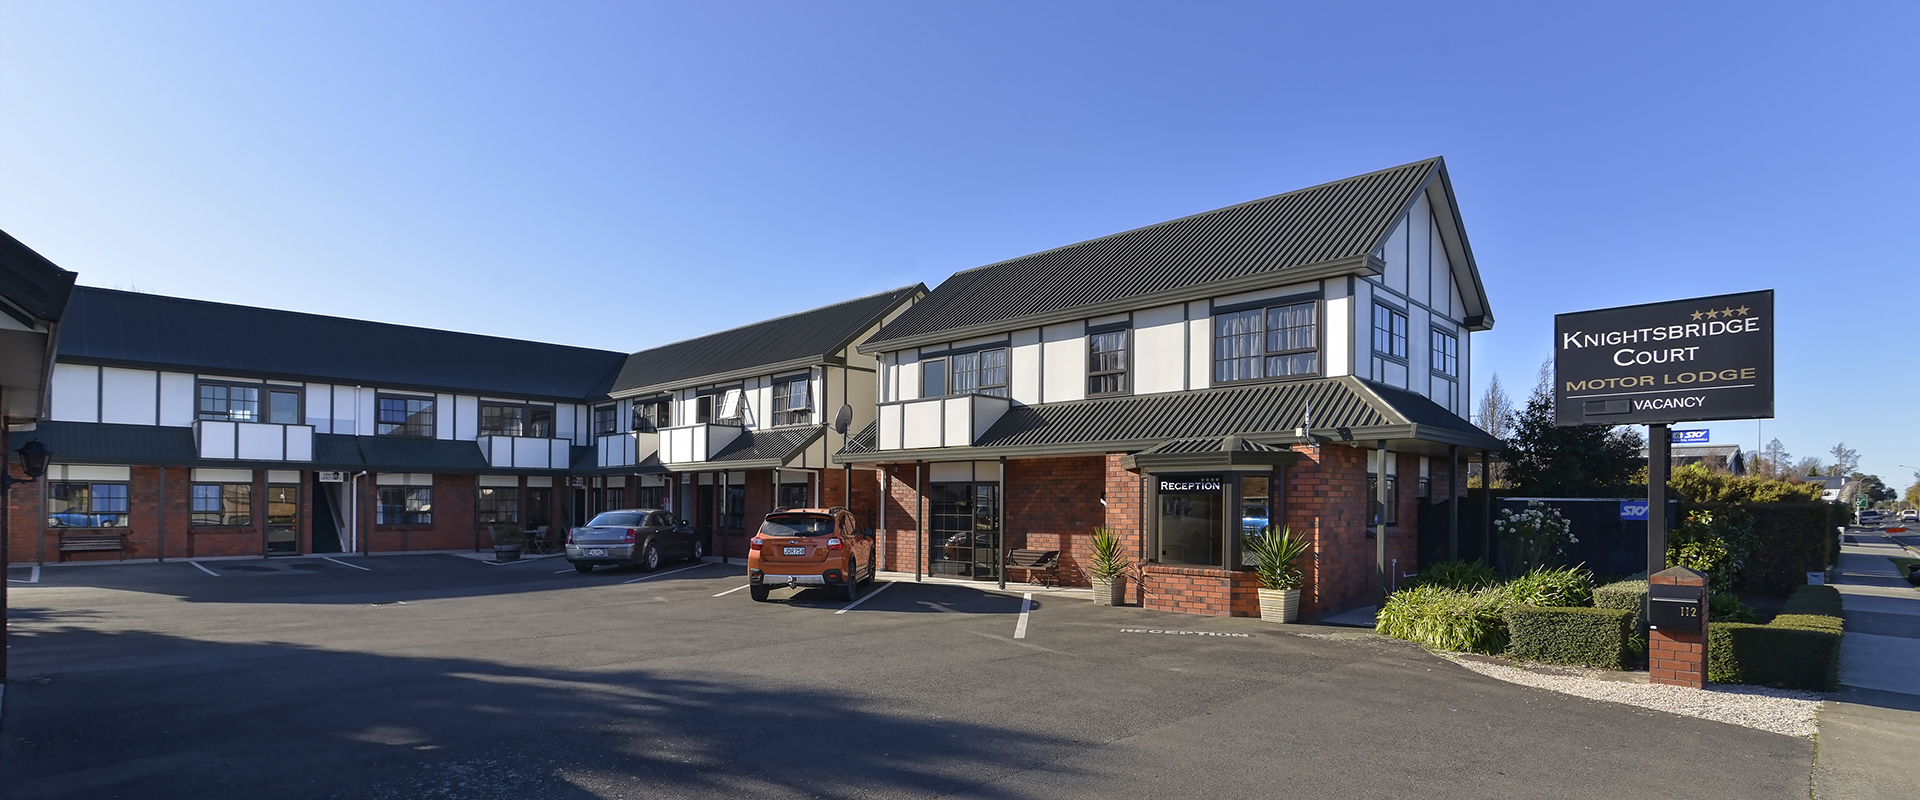 Knightsbridge Court Motel RBPHOTO 23